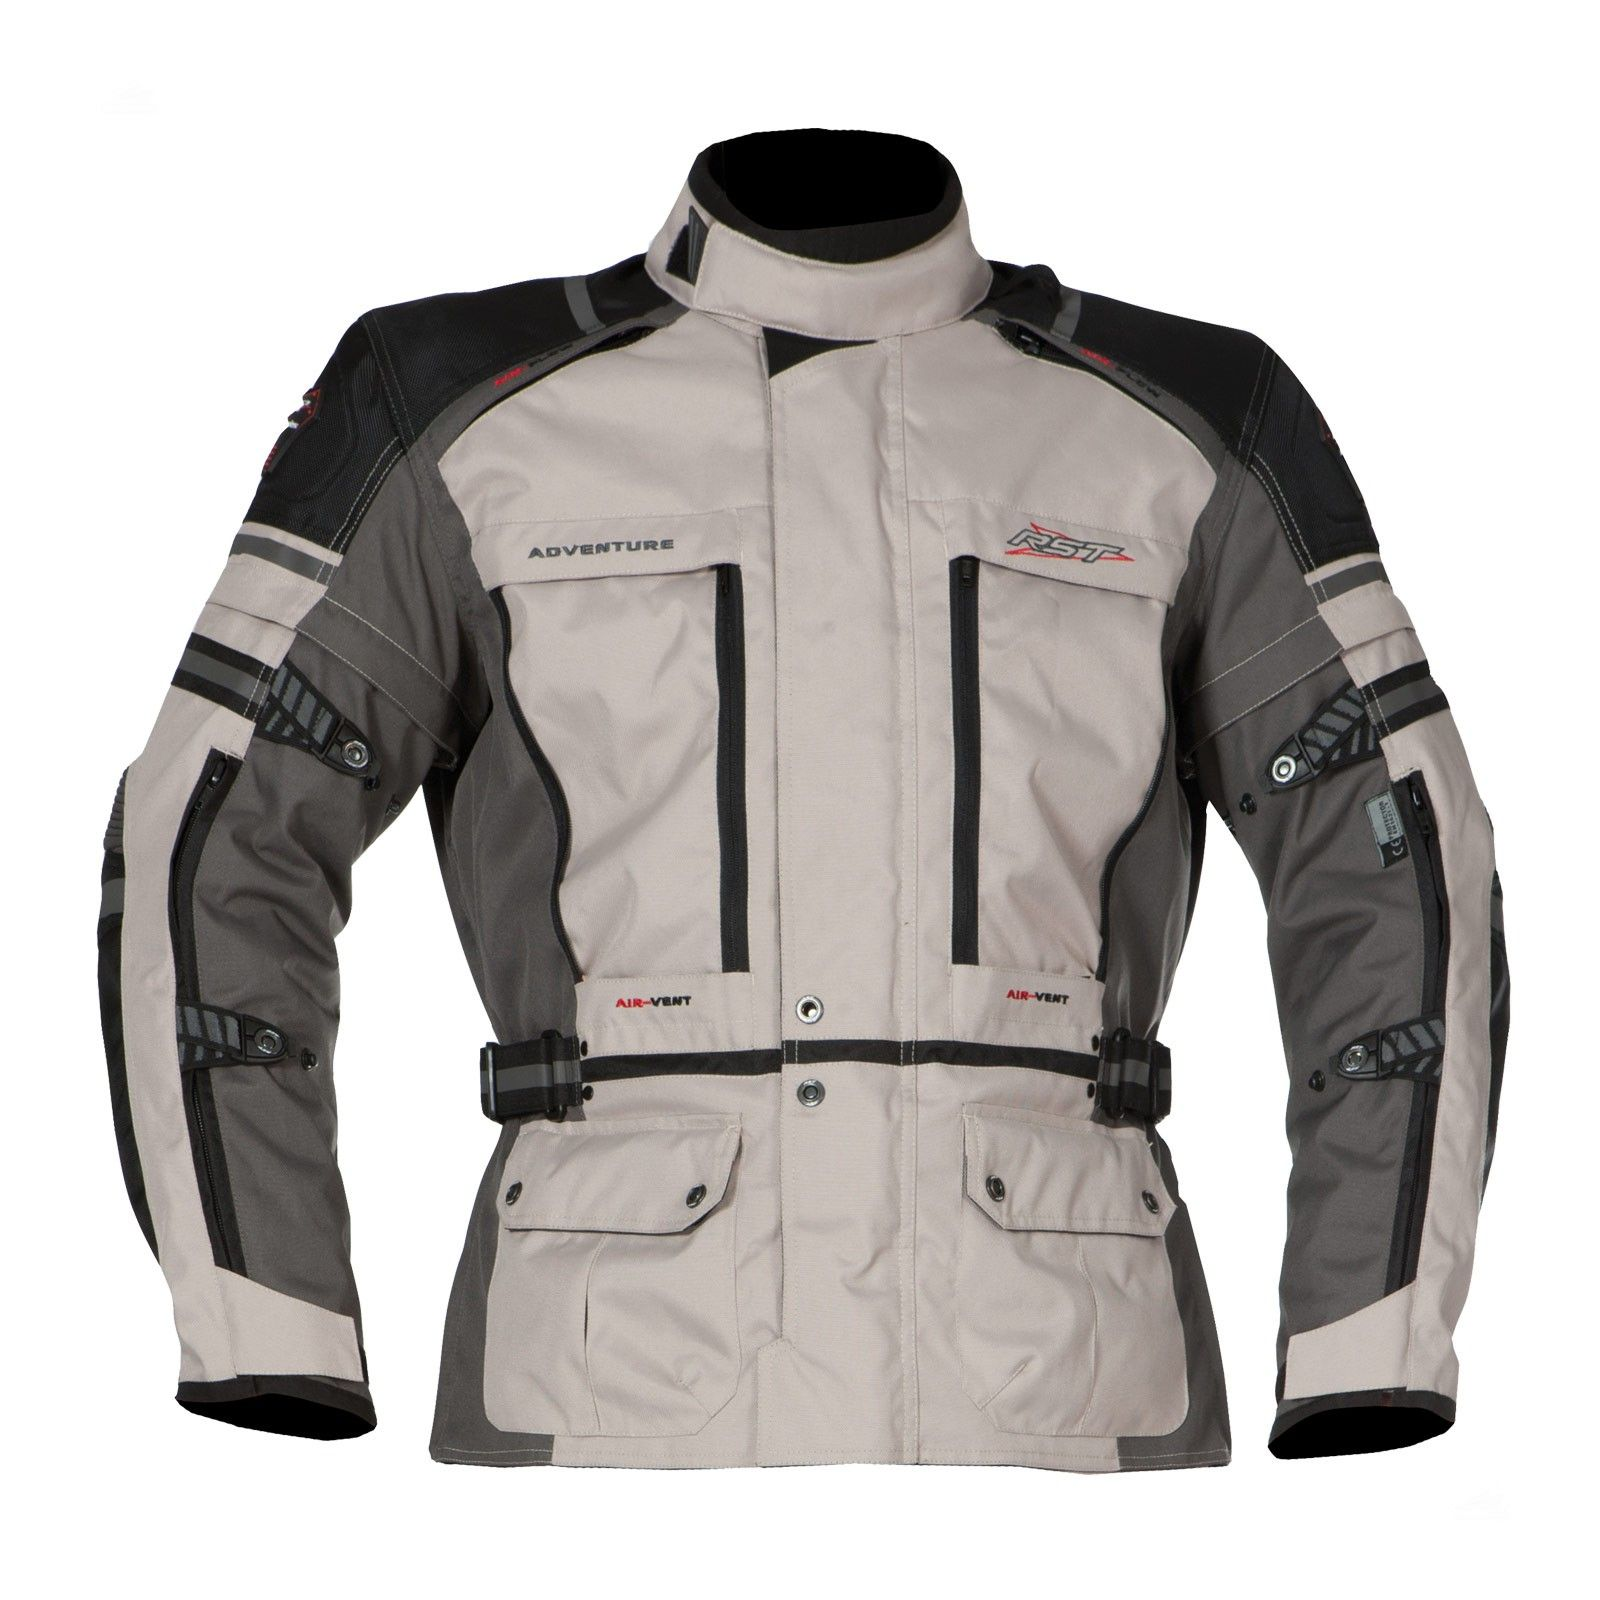 121446435a5 RST Adventure 1222 Suit Jacket, sand - Jackets - Motorcycle Clothing -  Clothing